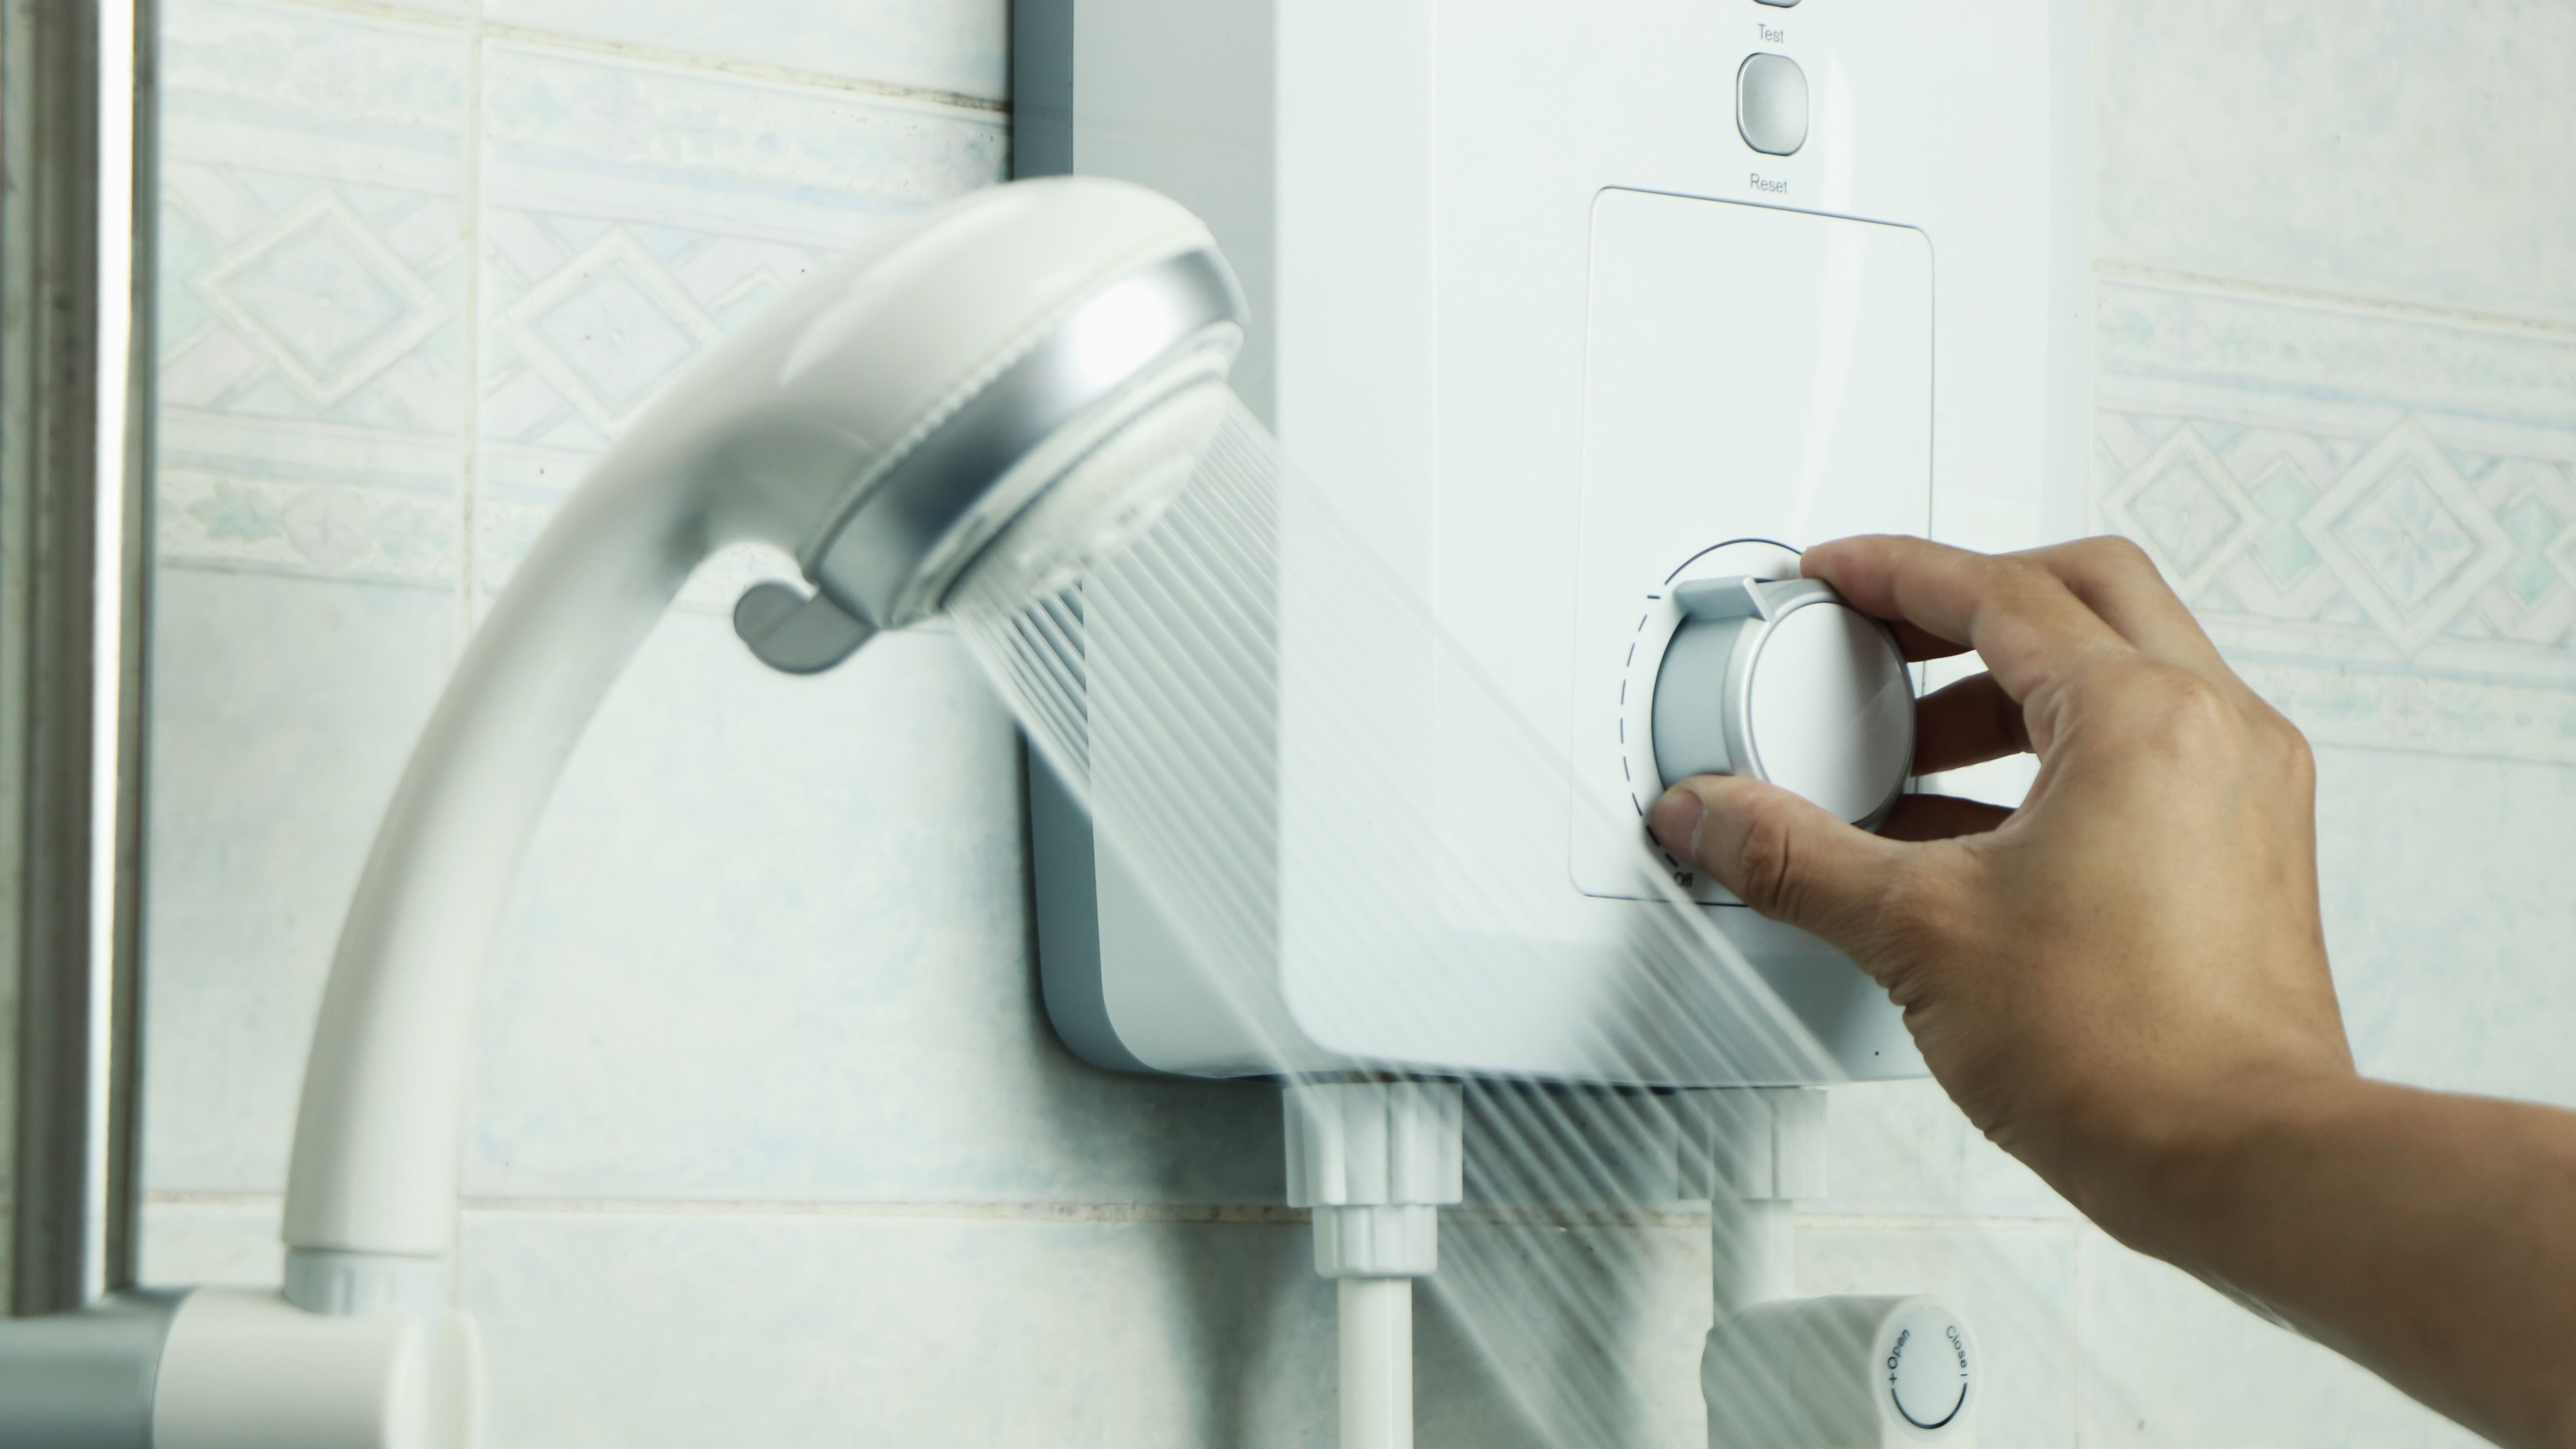 Instantaneous water heater buying guide